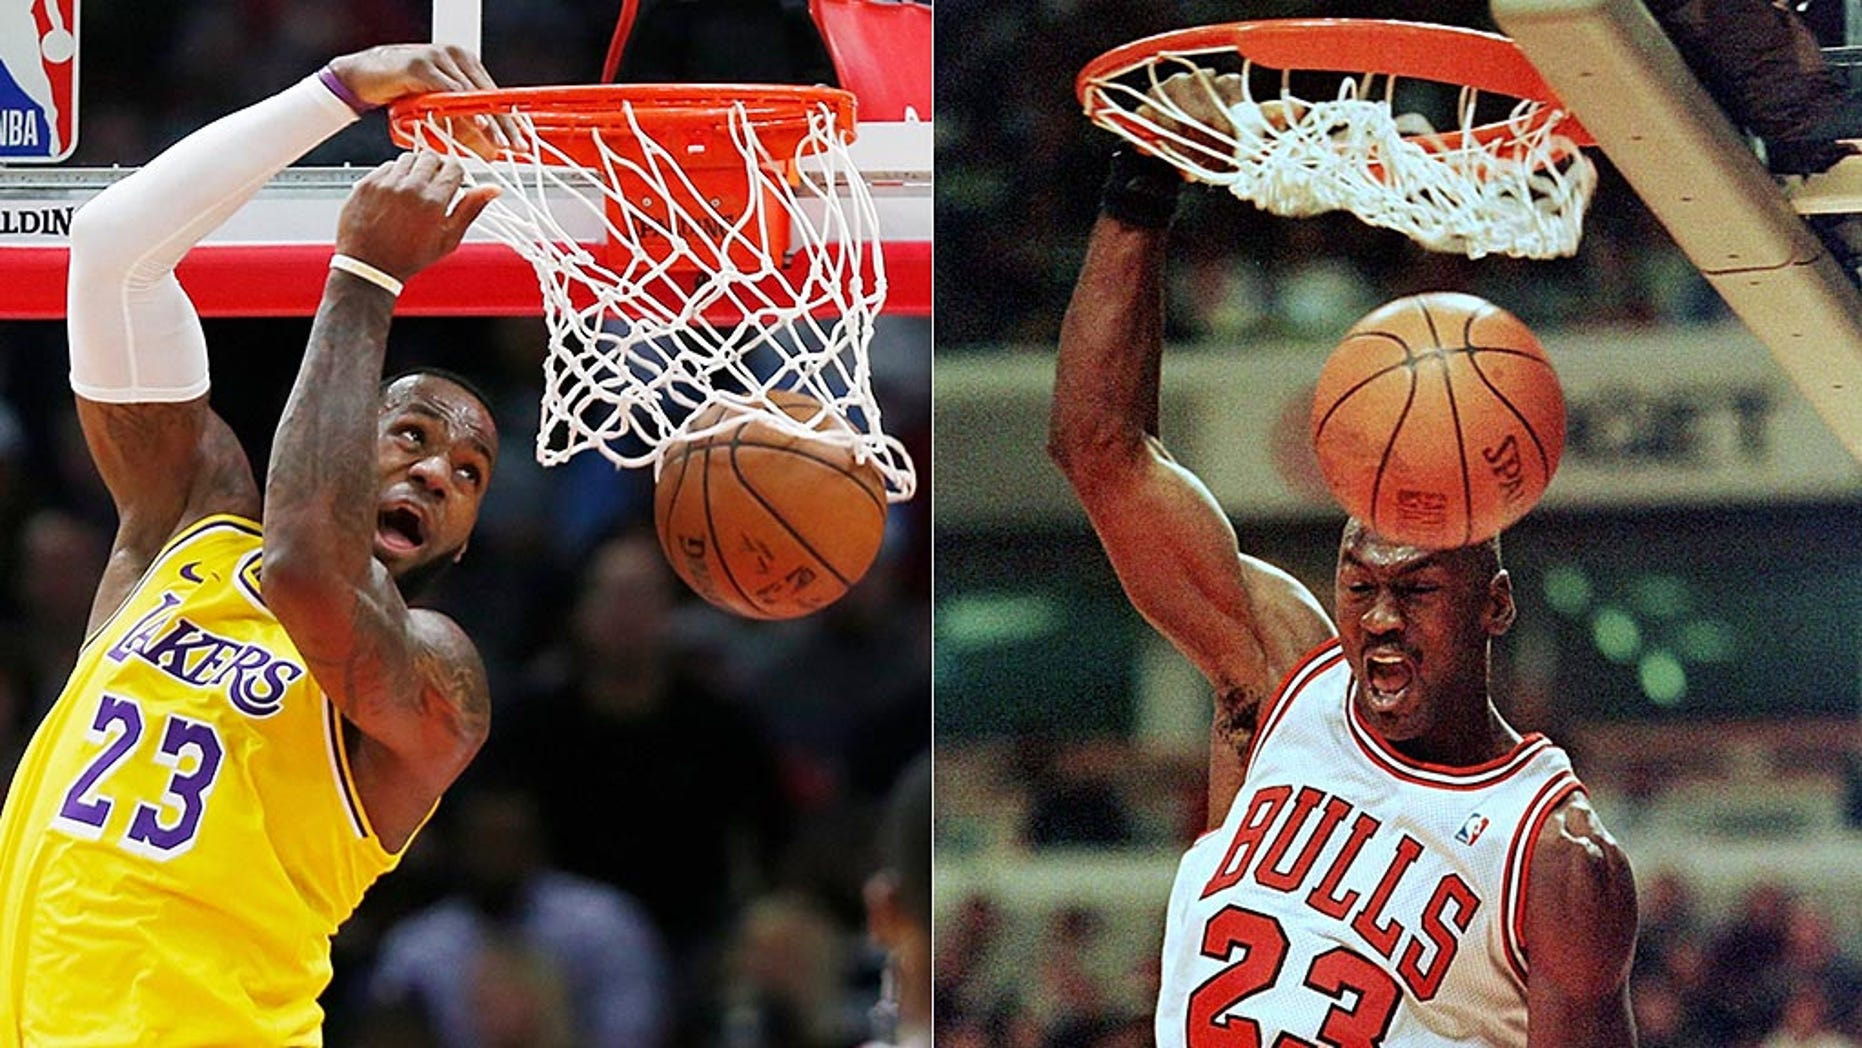 Basketball fans have voted on who is the best ever -- Michael Jordan or LeBron James